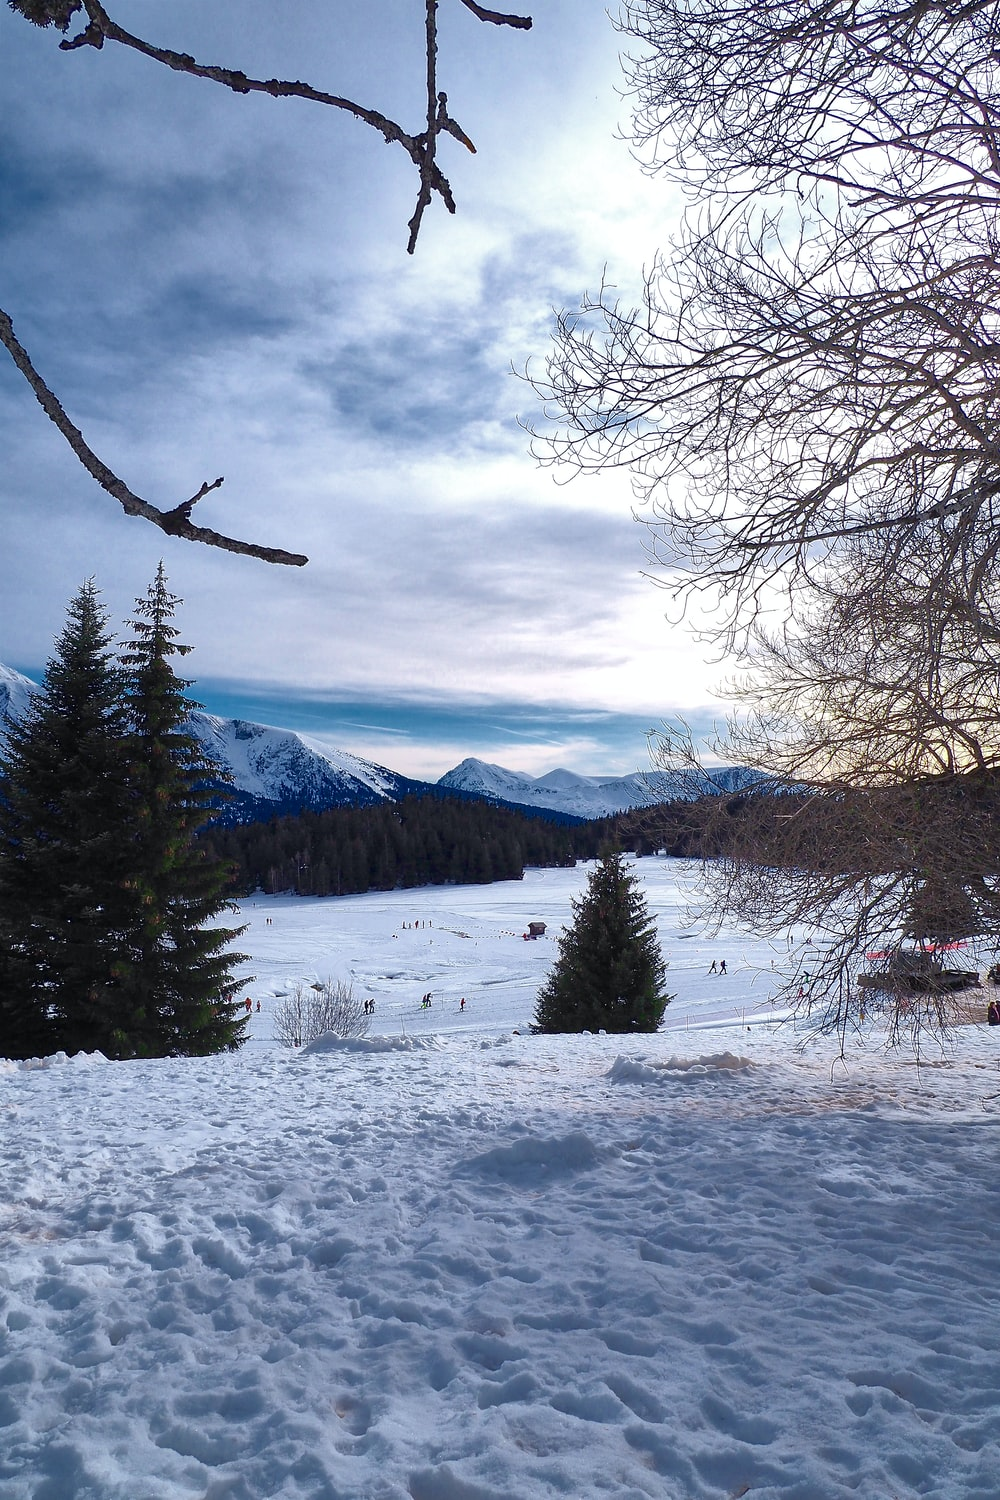 snow covered field with trees and mountains in the distance